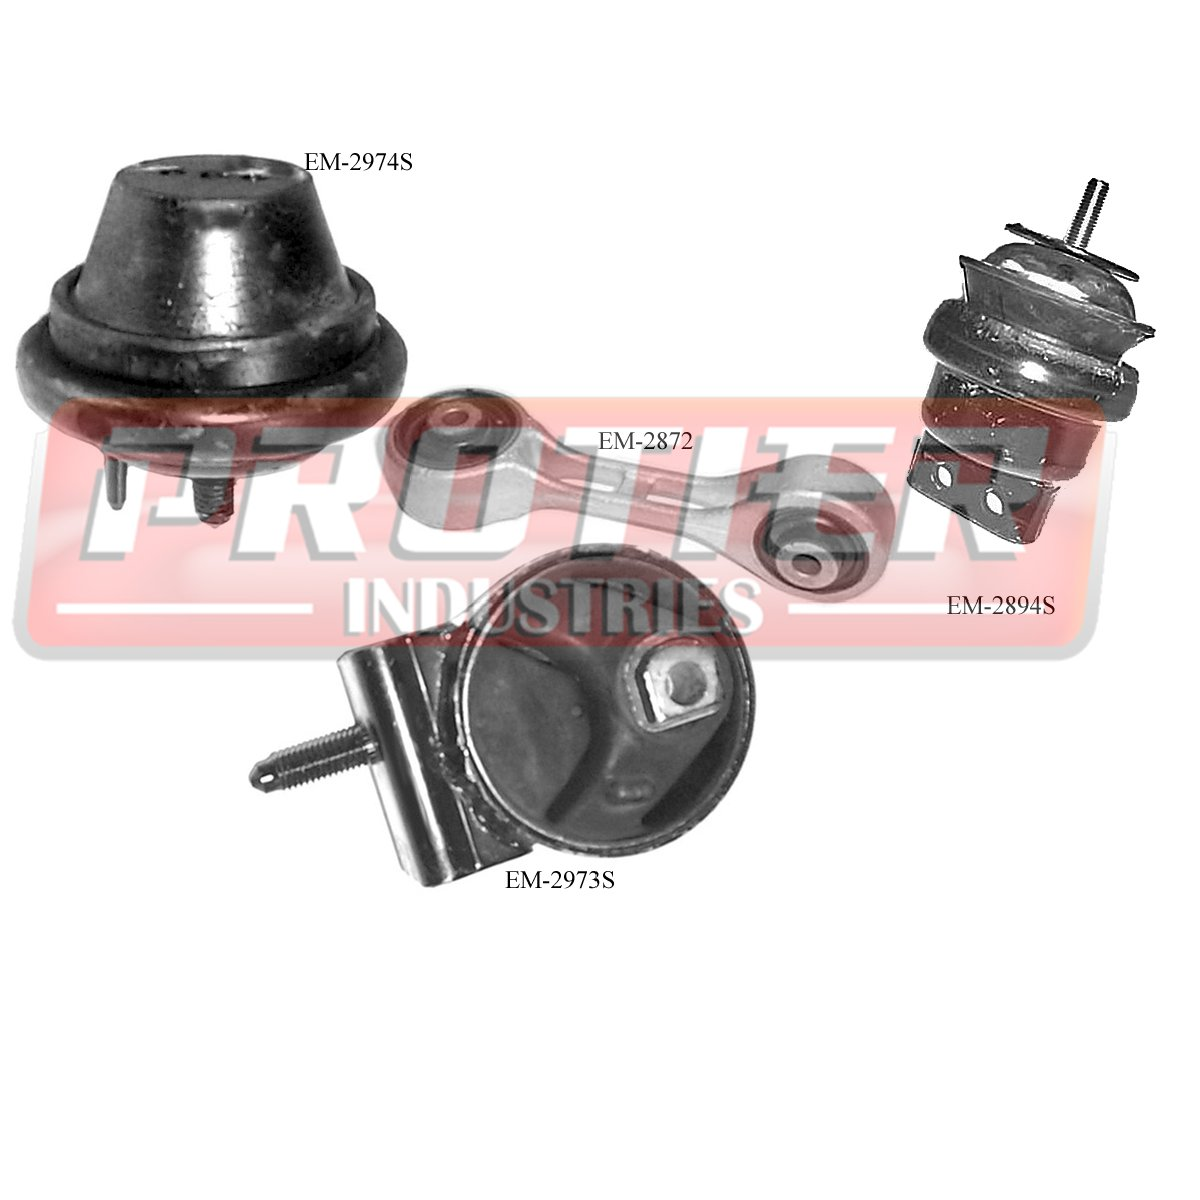 engine motor trans mount set for 2000 2003 ford taurus. Black Bedroom Furniture Sets. Home Design Ideas